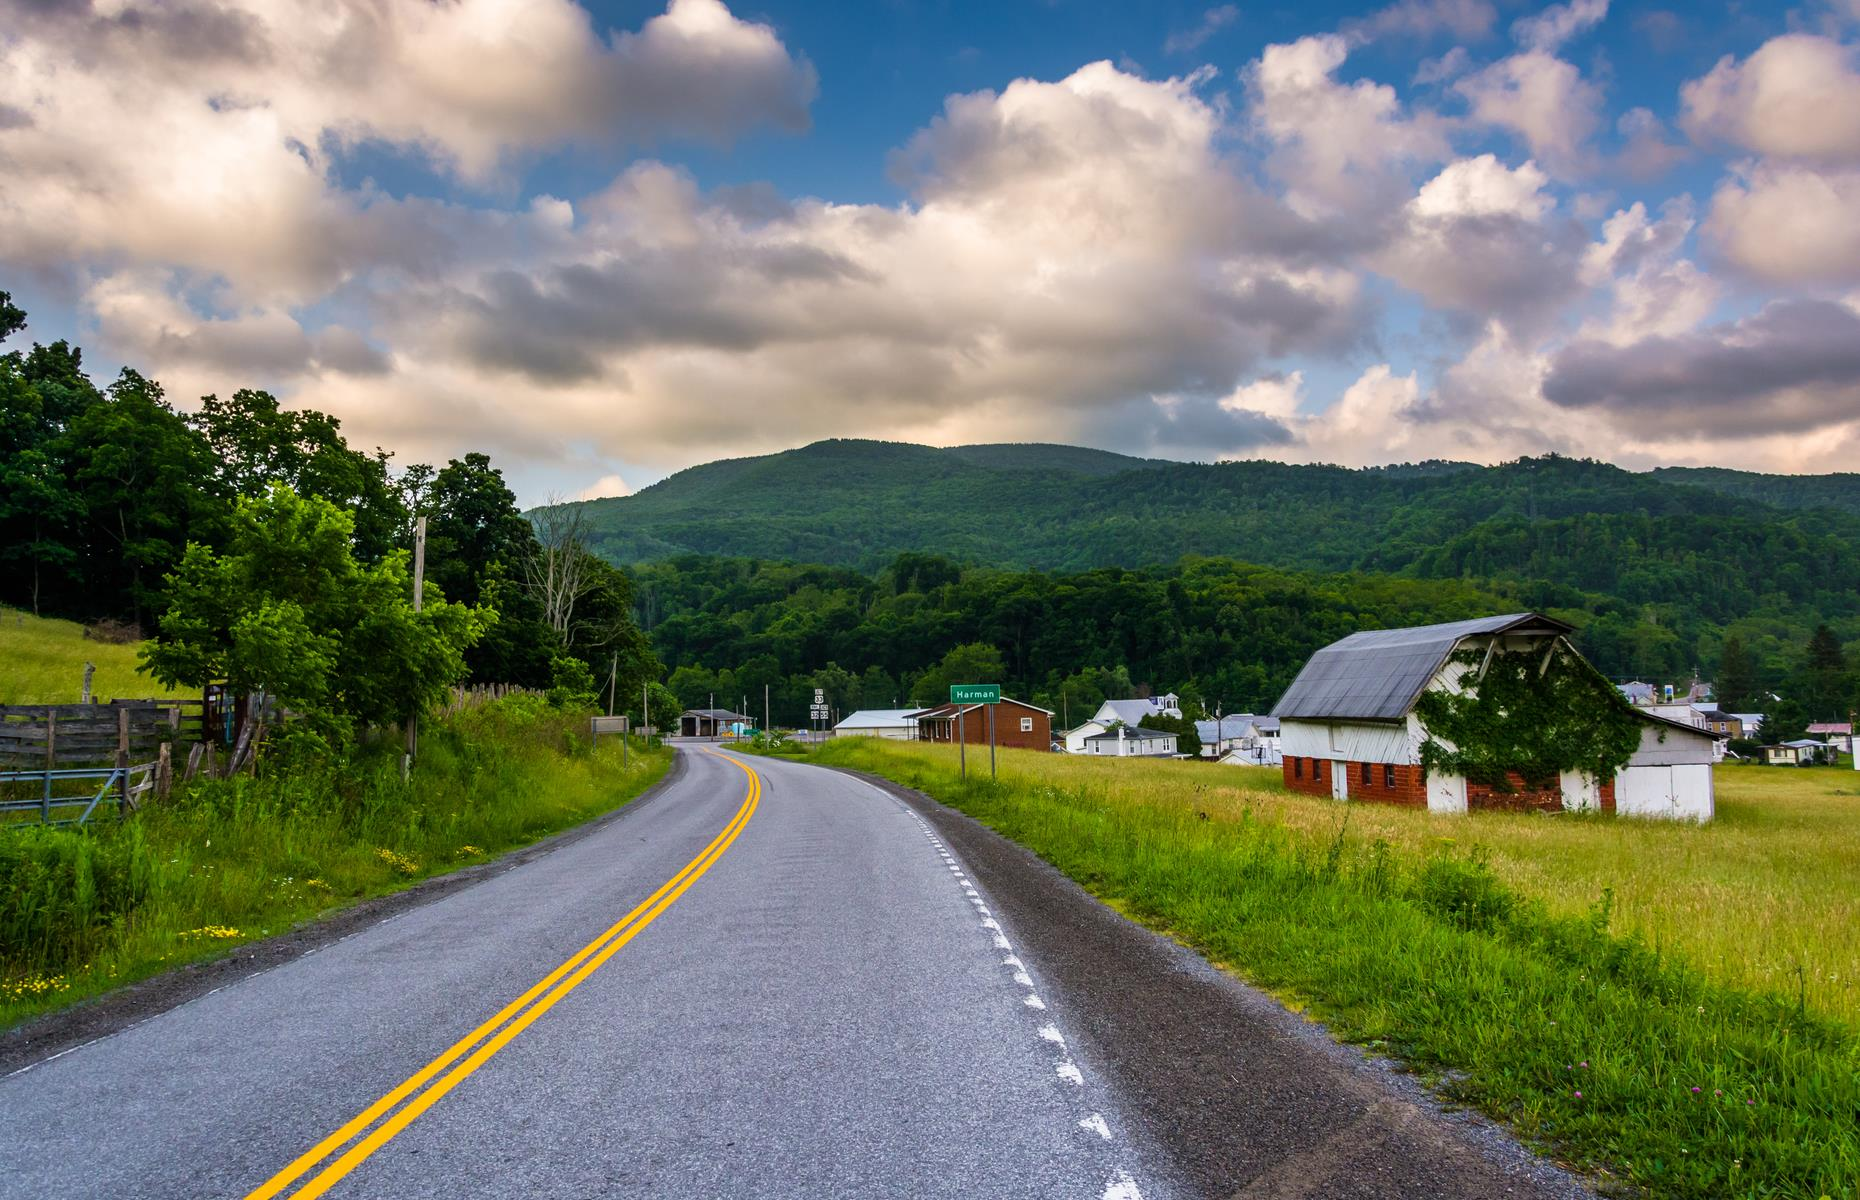 Slide 96 of 101: Beginning in Fairmont, this route to Harman travels via the small city of Thomas, where it joins the scenic Route 32 (pictured), carving its way through the Canaan Valley. The trip needs at least two hours and 10 minutes of driving time and whizzes through 85 miles (137km) of green scenery, punctured by pocket-sized towns.